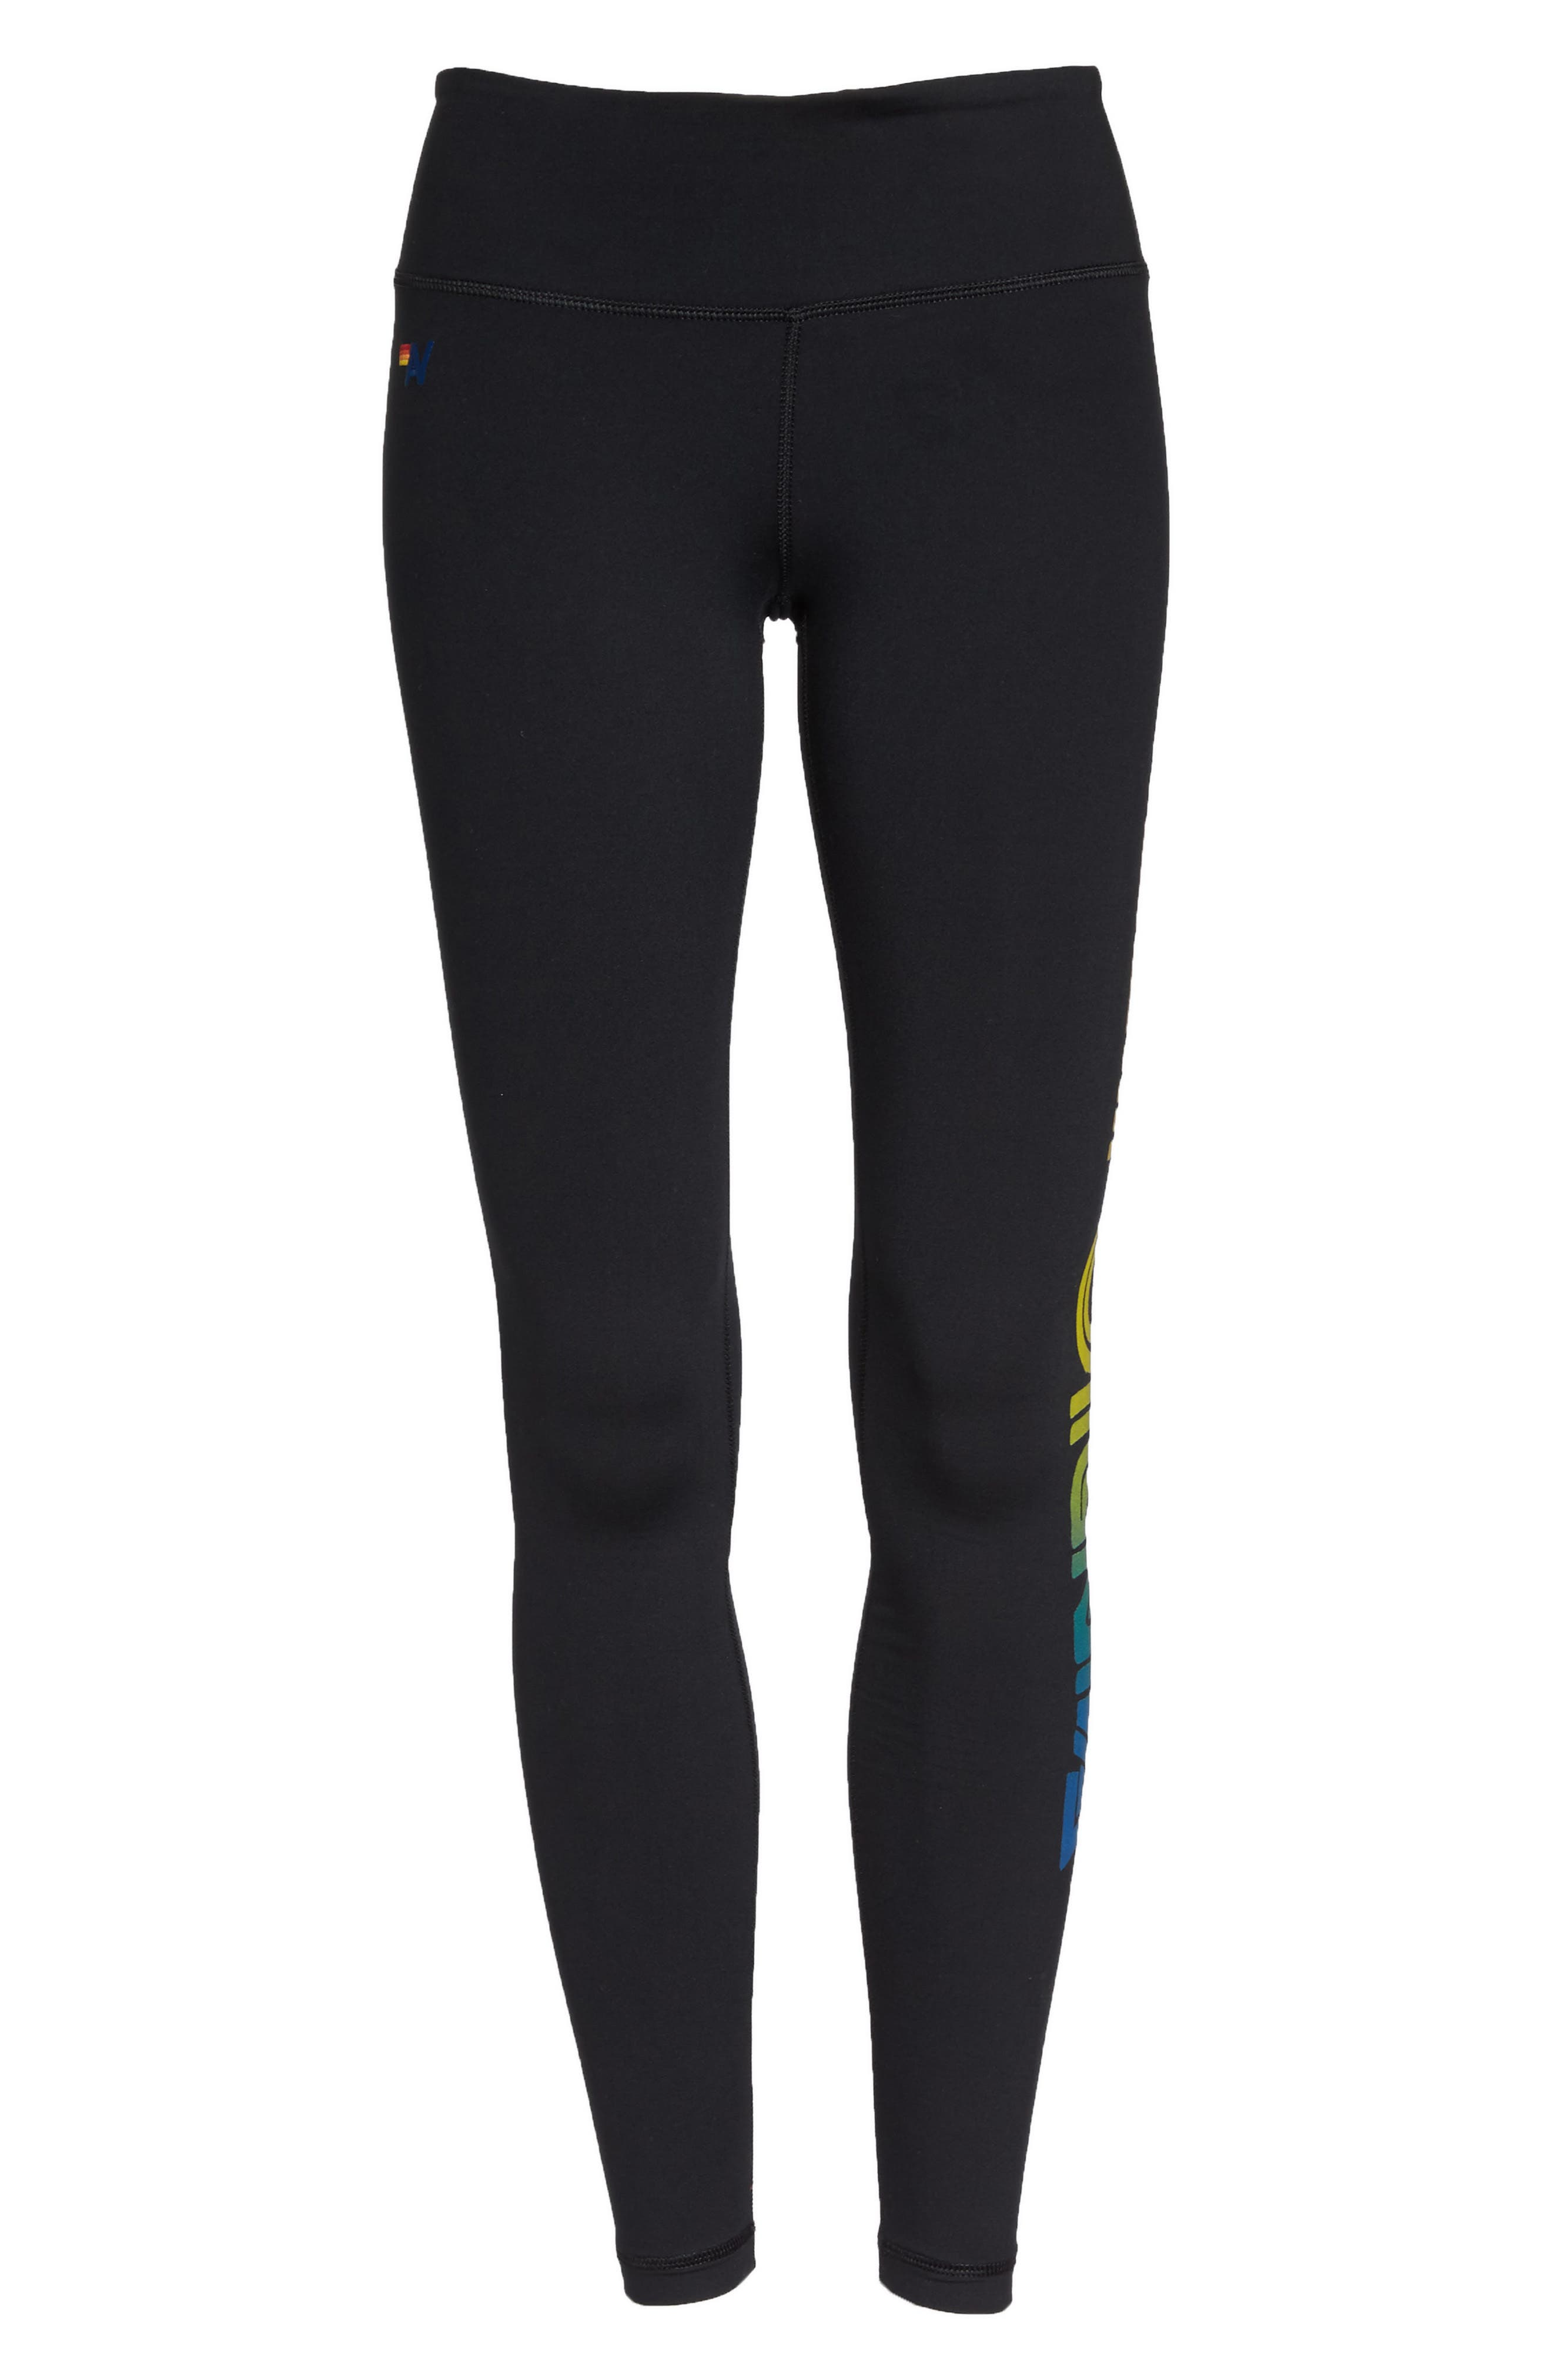 California Leggings,                             Alternate thumbnail 6, color,                             001